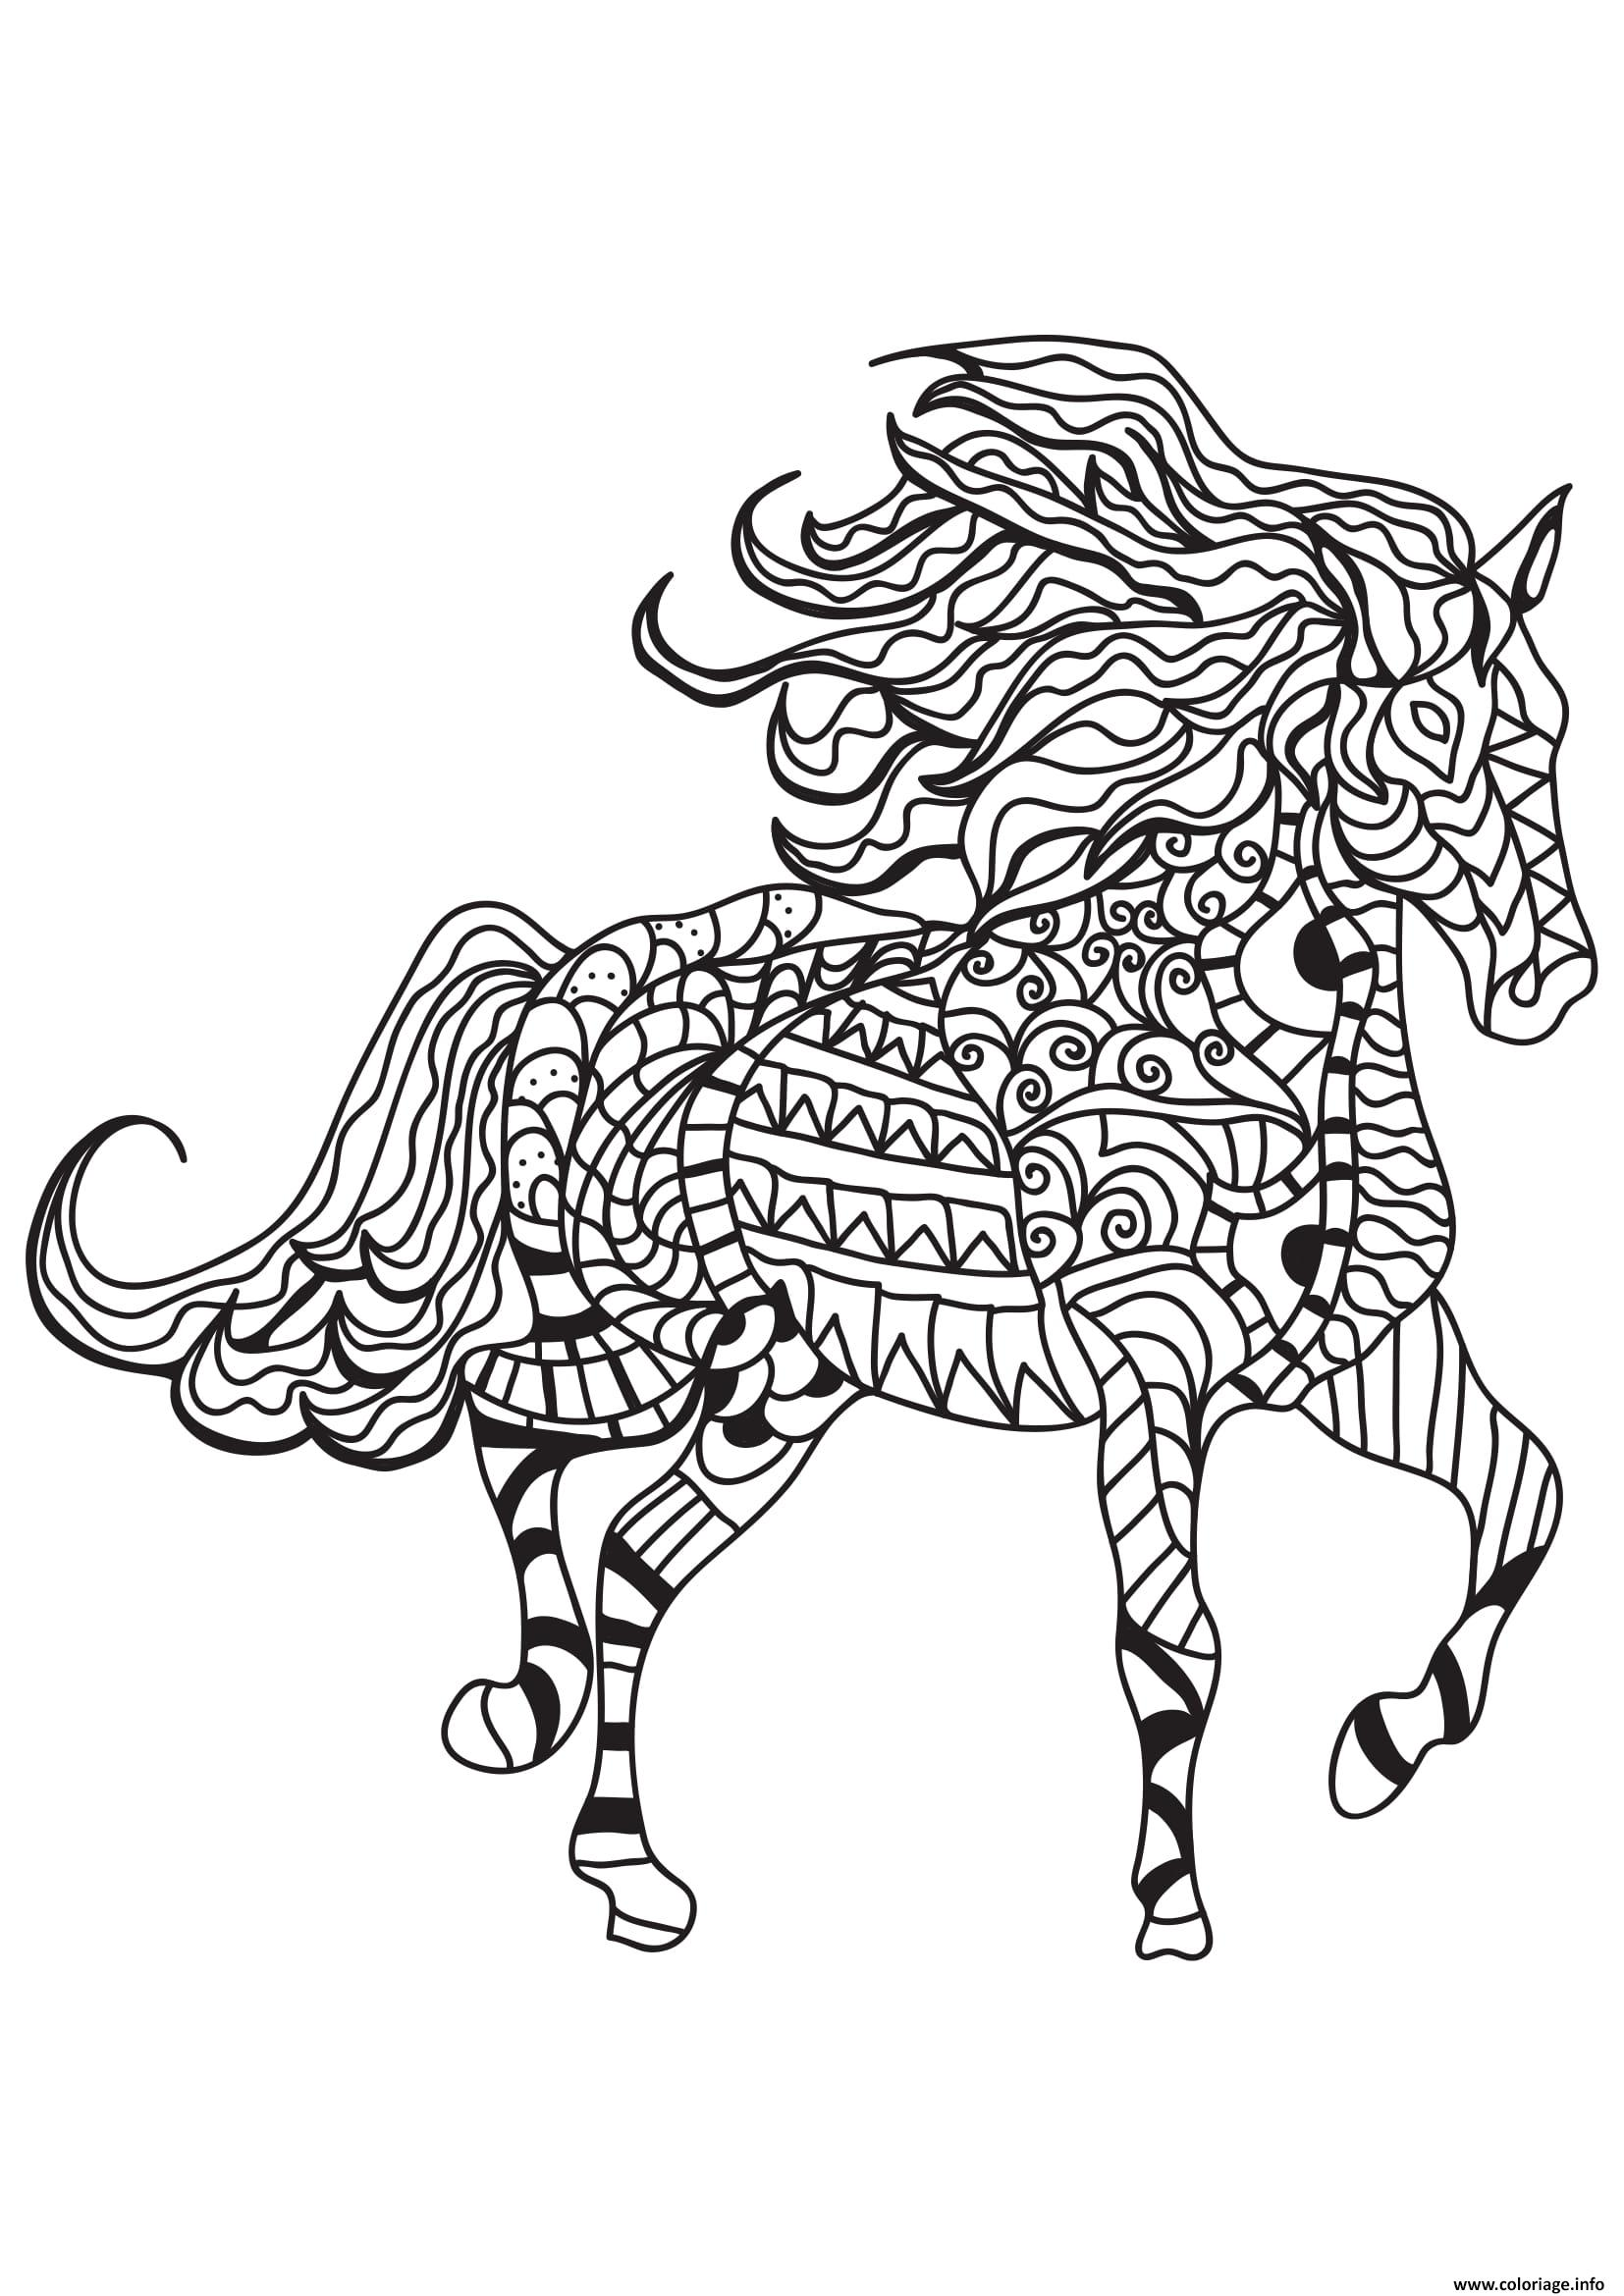 Coloriage adulte cheval zentangle 16 dessin - Chevaux a colorier ...